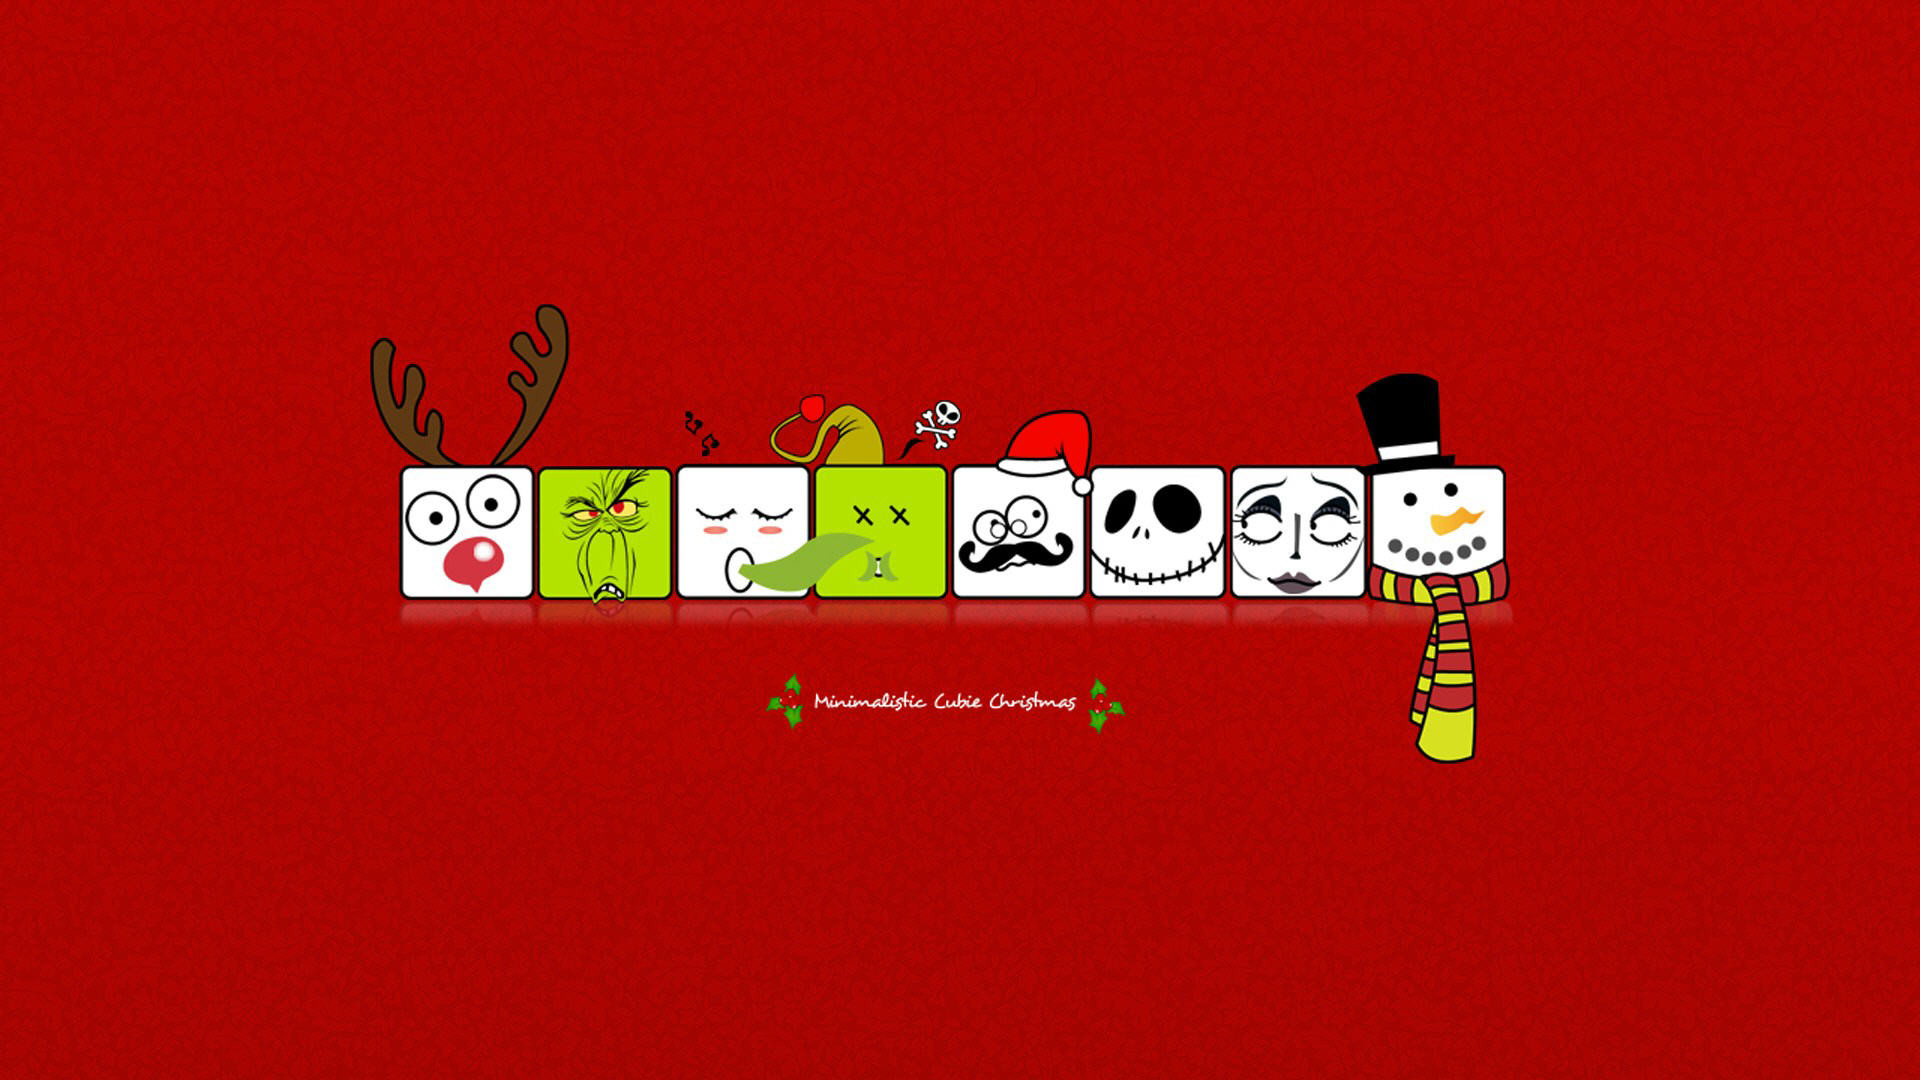 funny christmas images wallpaper hd 4422